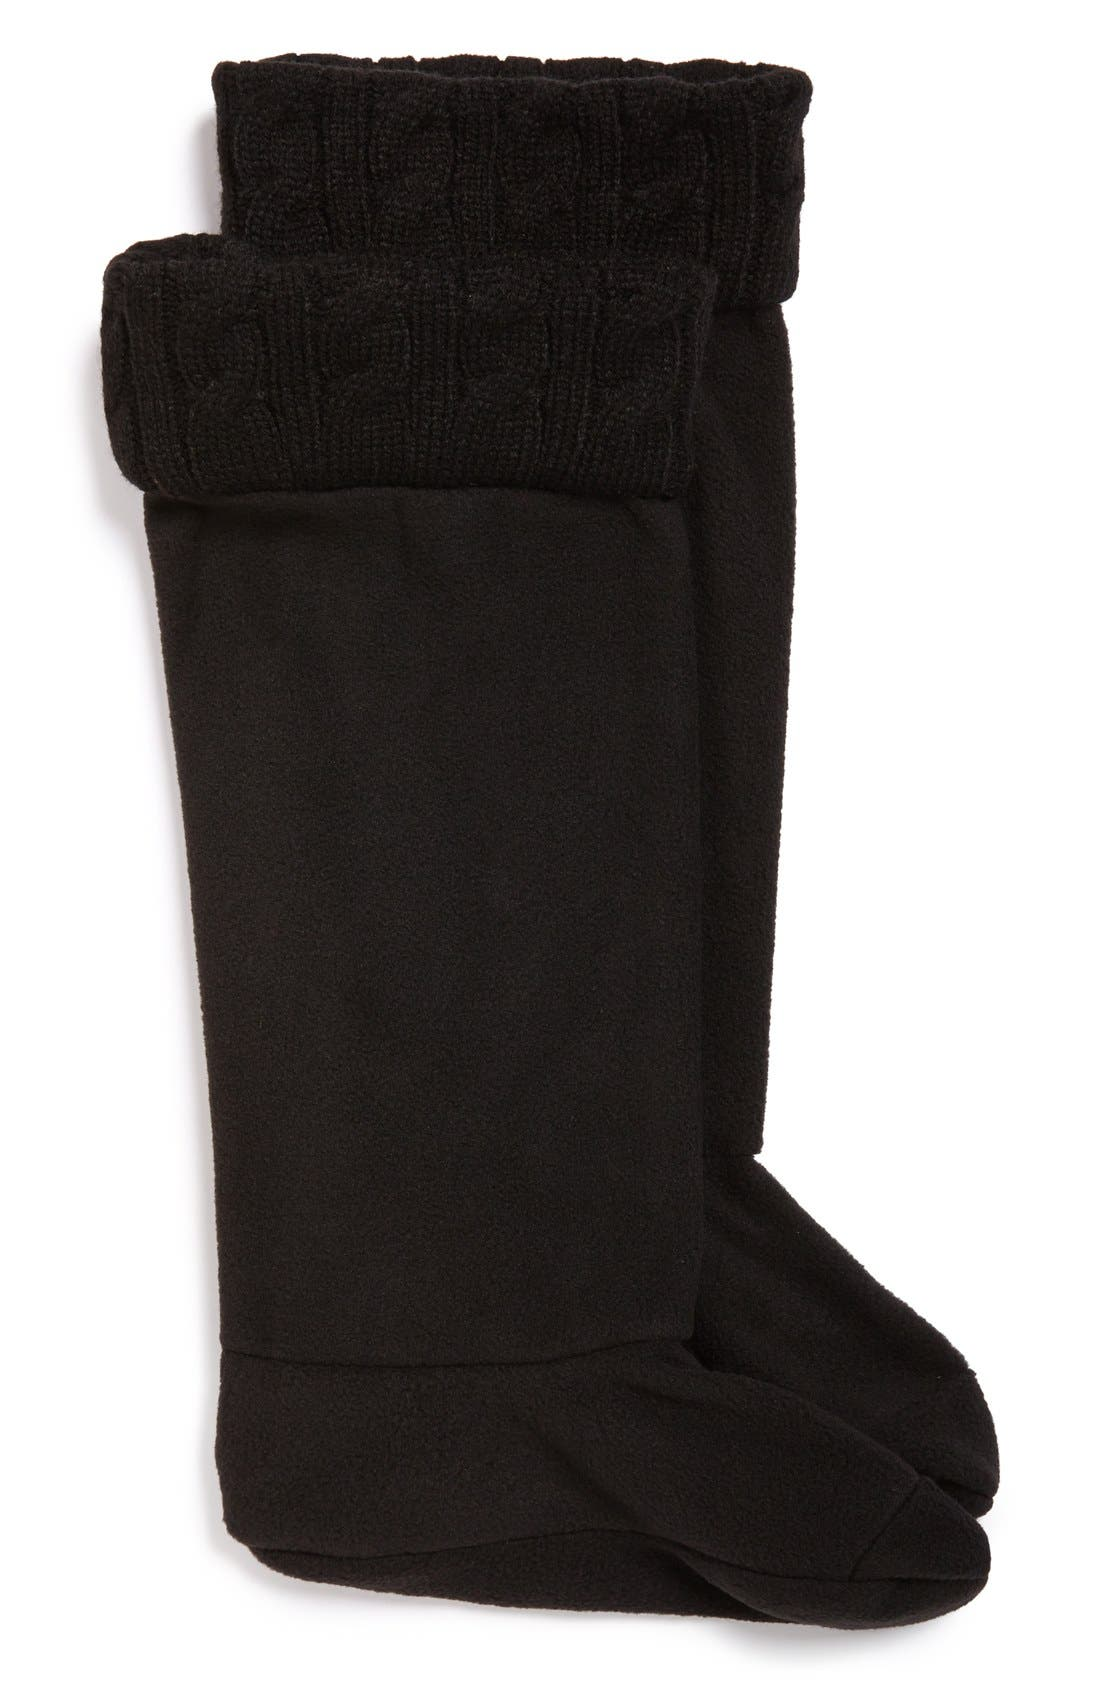 Alternate Image 1 Selected - Chooka Cable Knit Cuff Rain Boot Socks